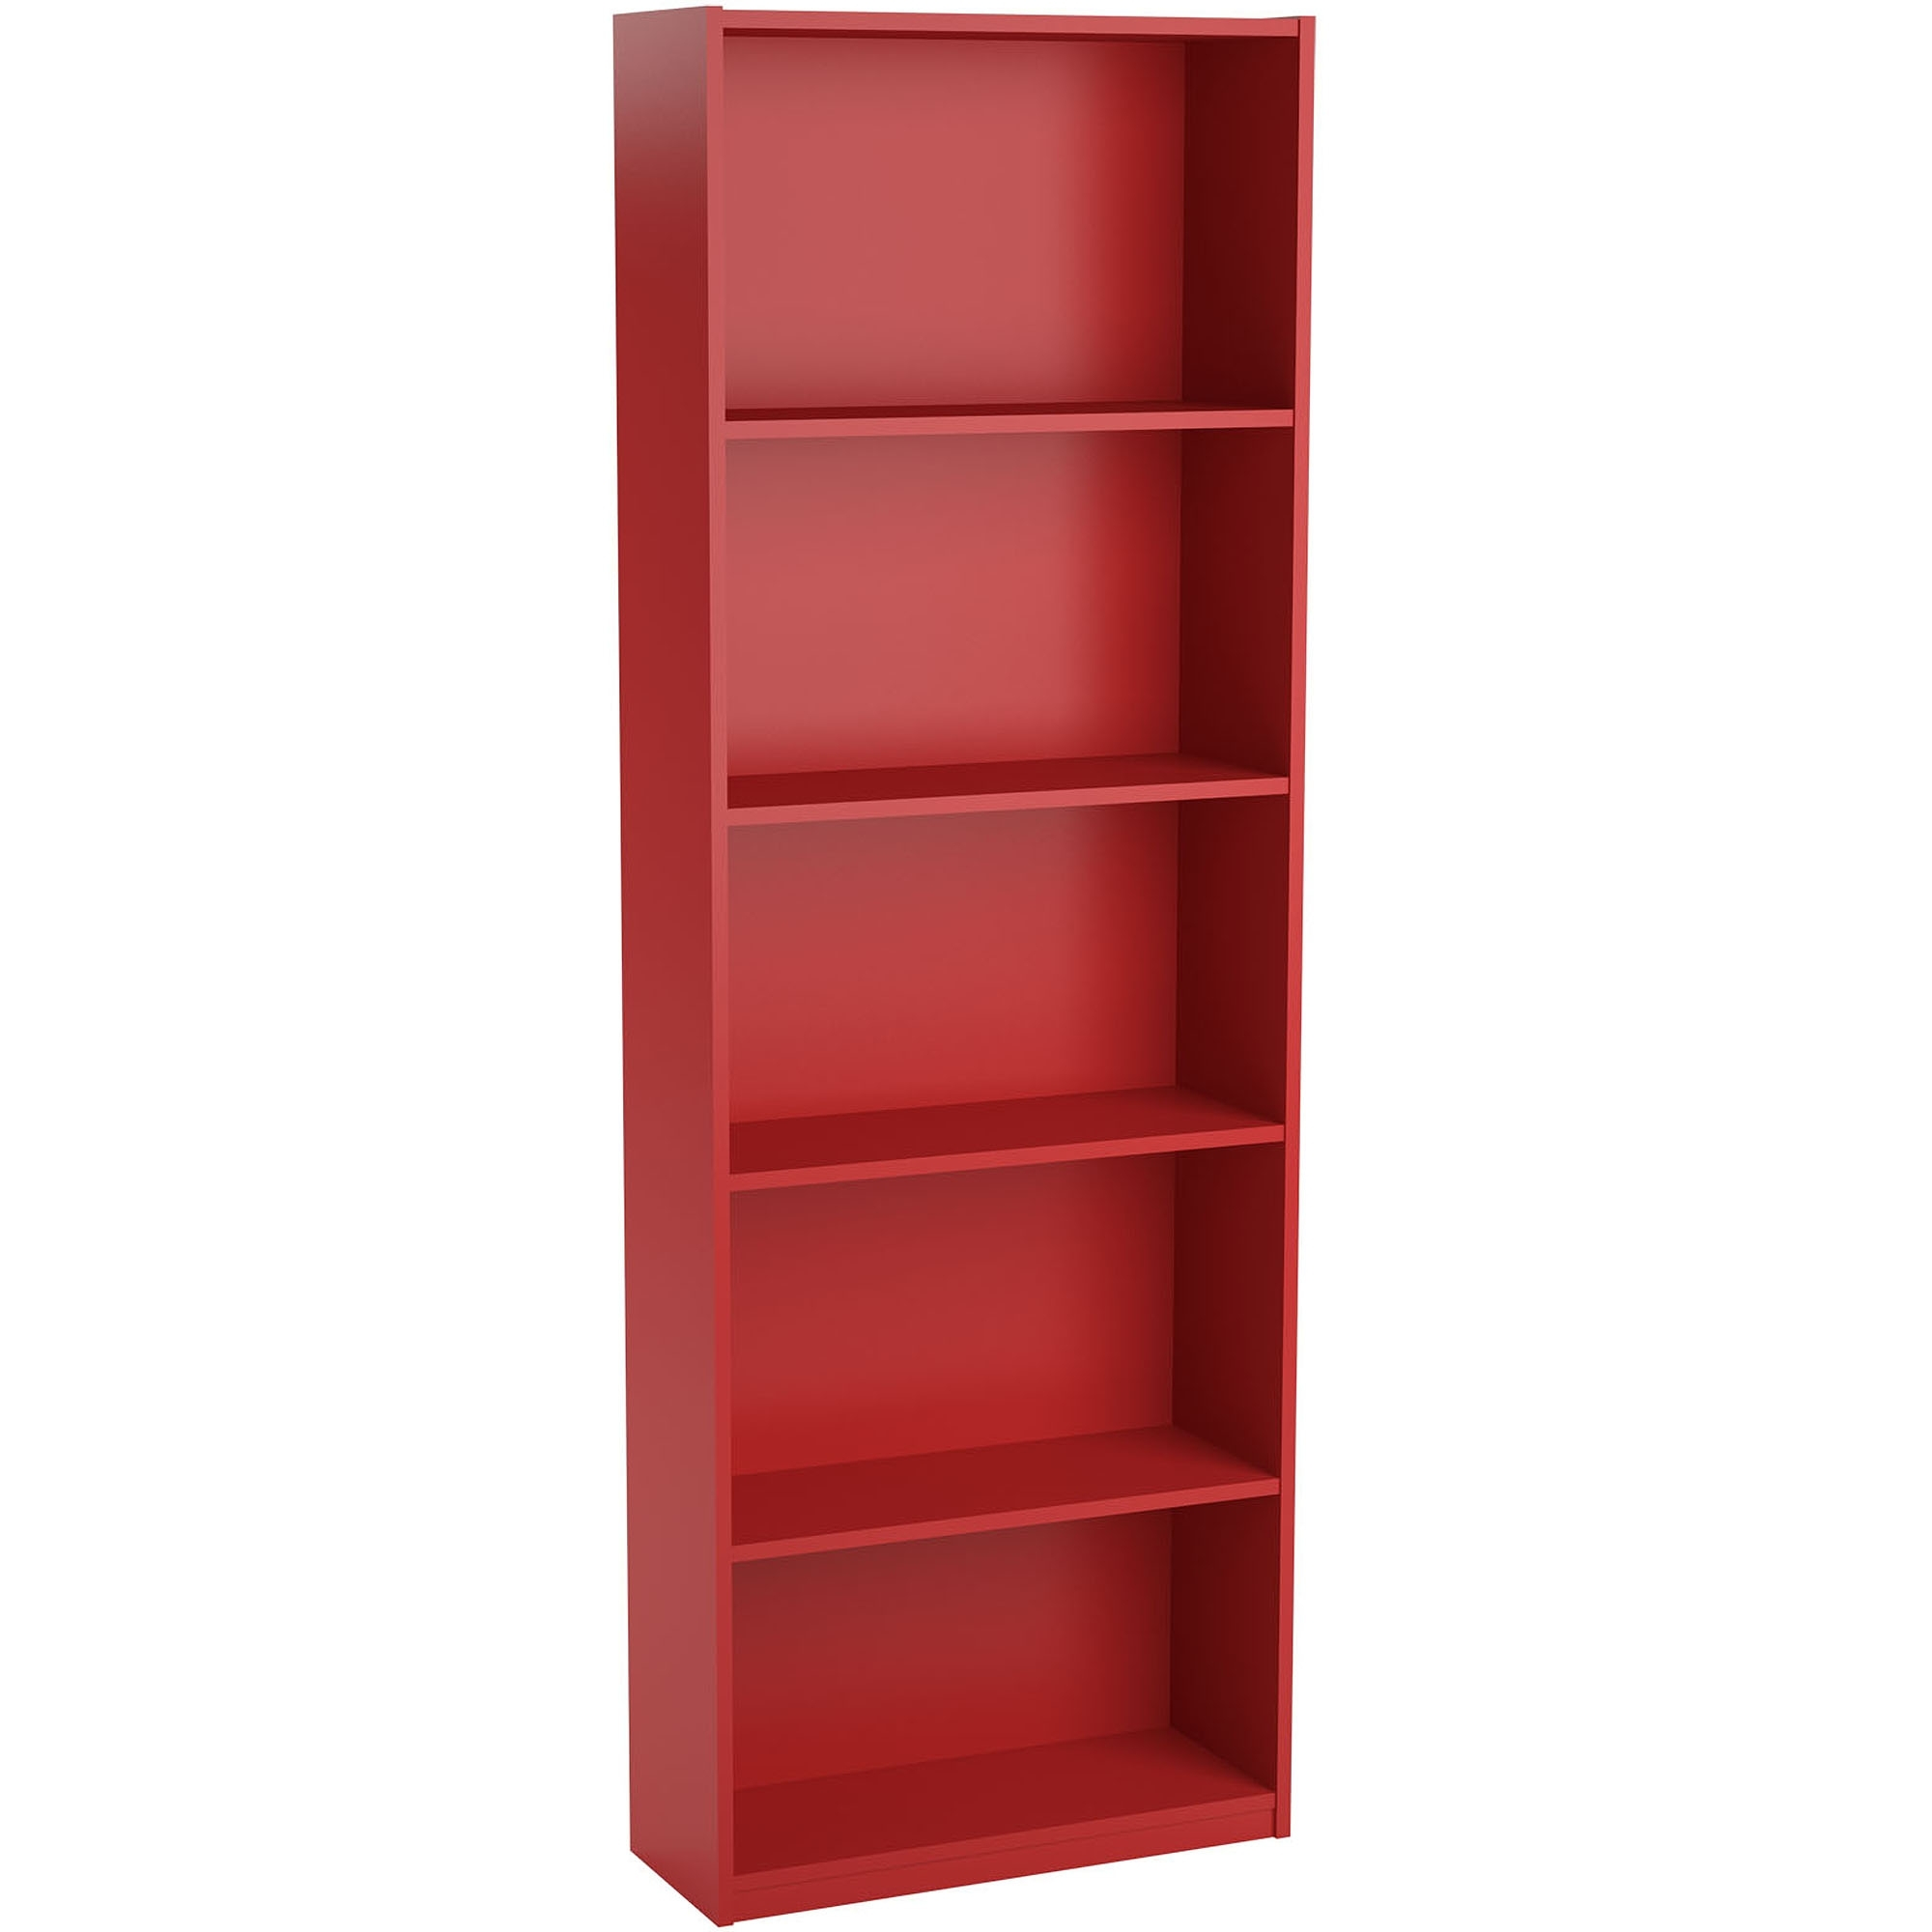 Furniture Home: Impressive Red Bookcases Picture Concept Ameriwood With Regard To Favorite Red Bookcases (View 4 of 15)